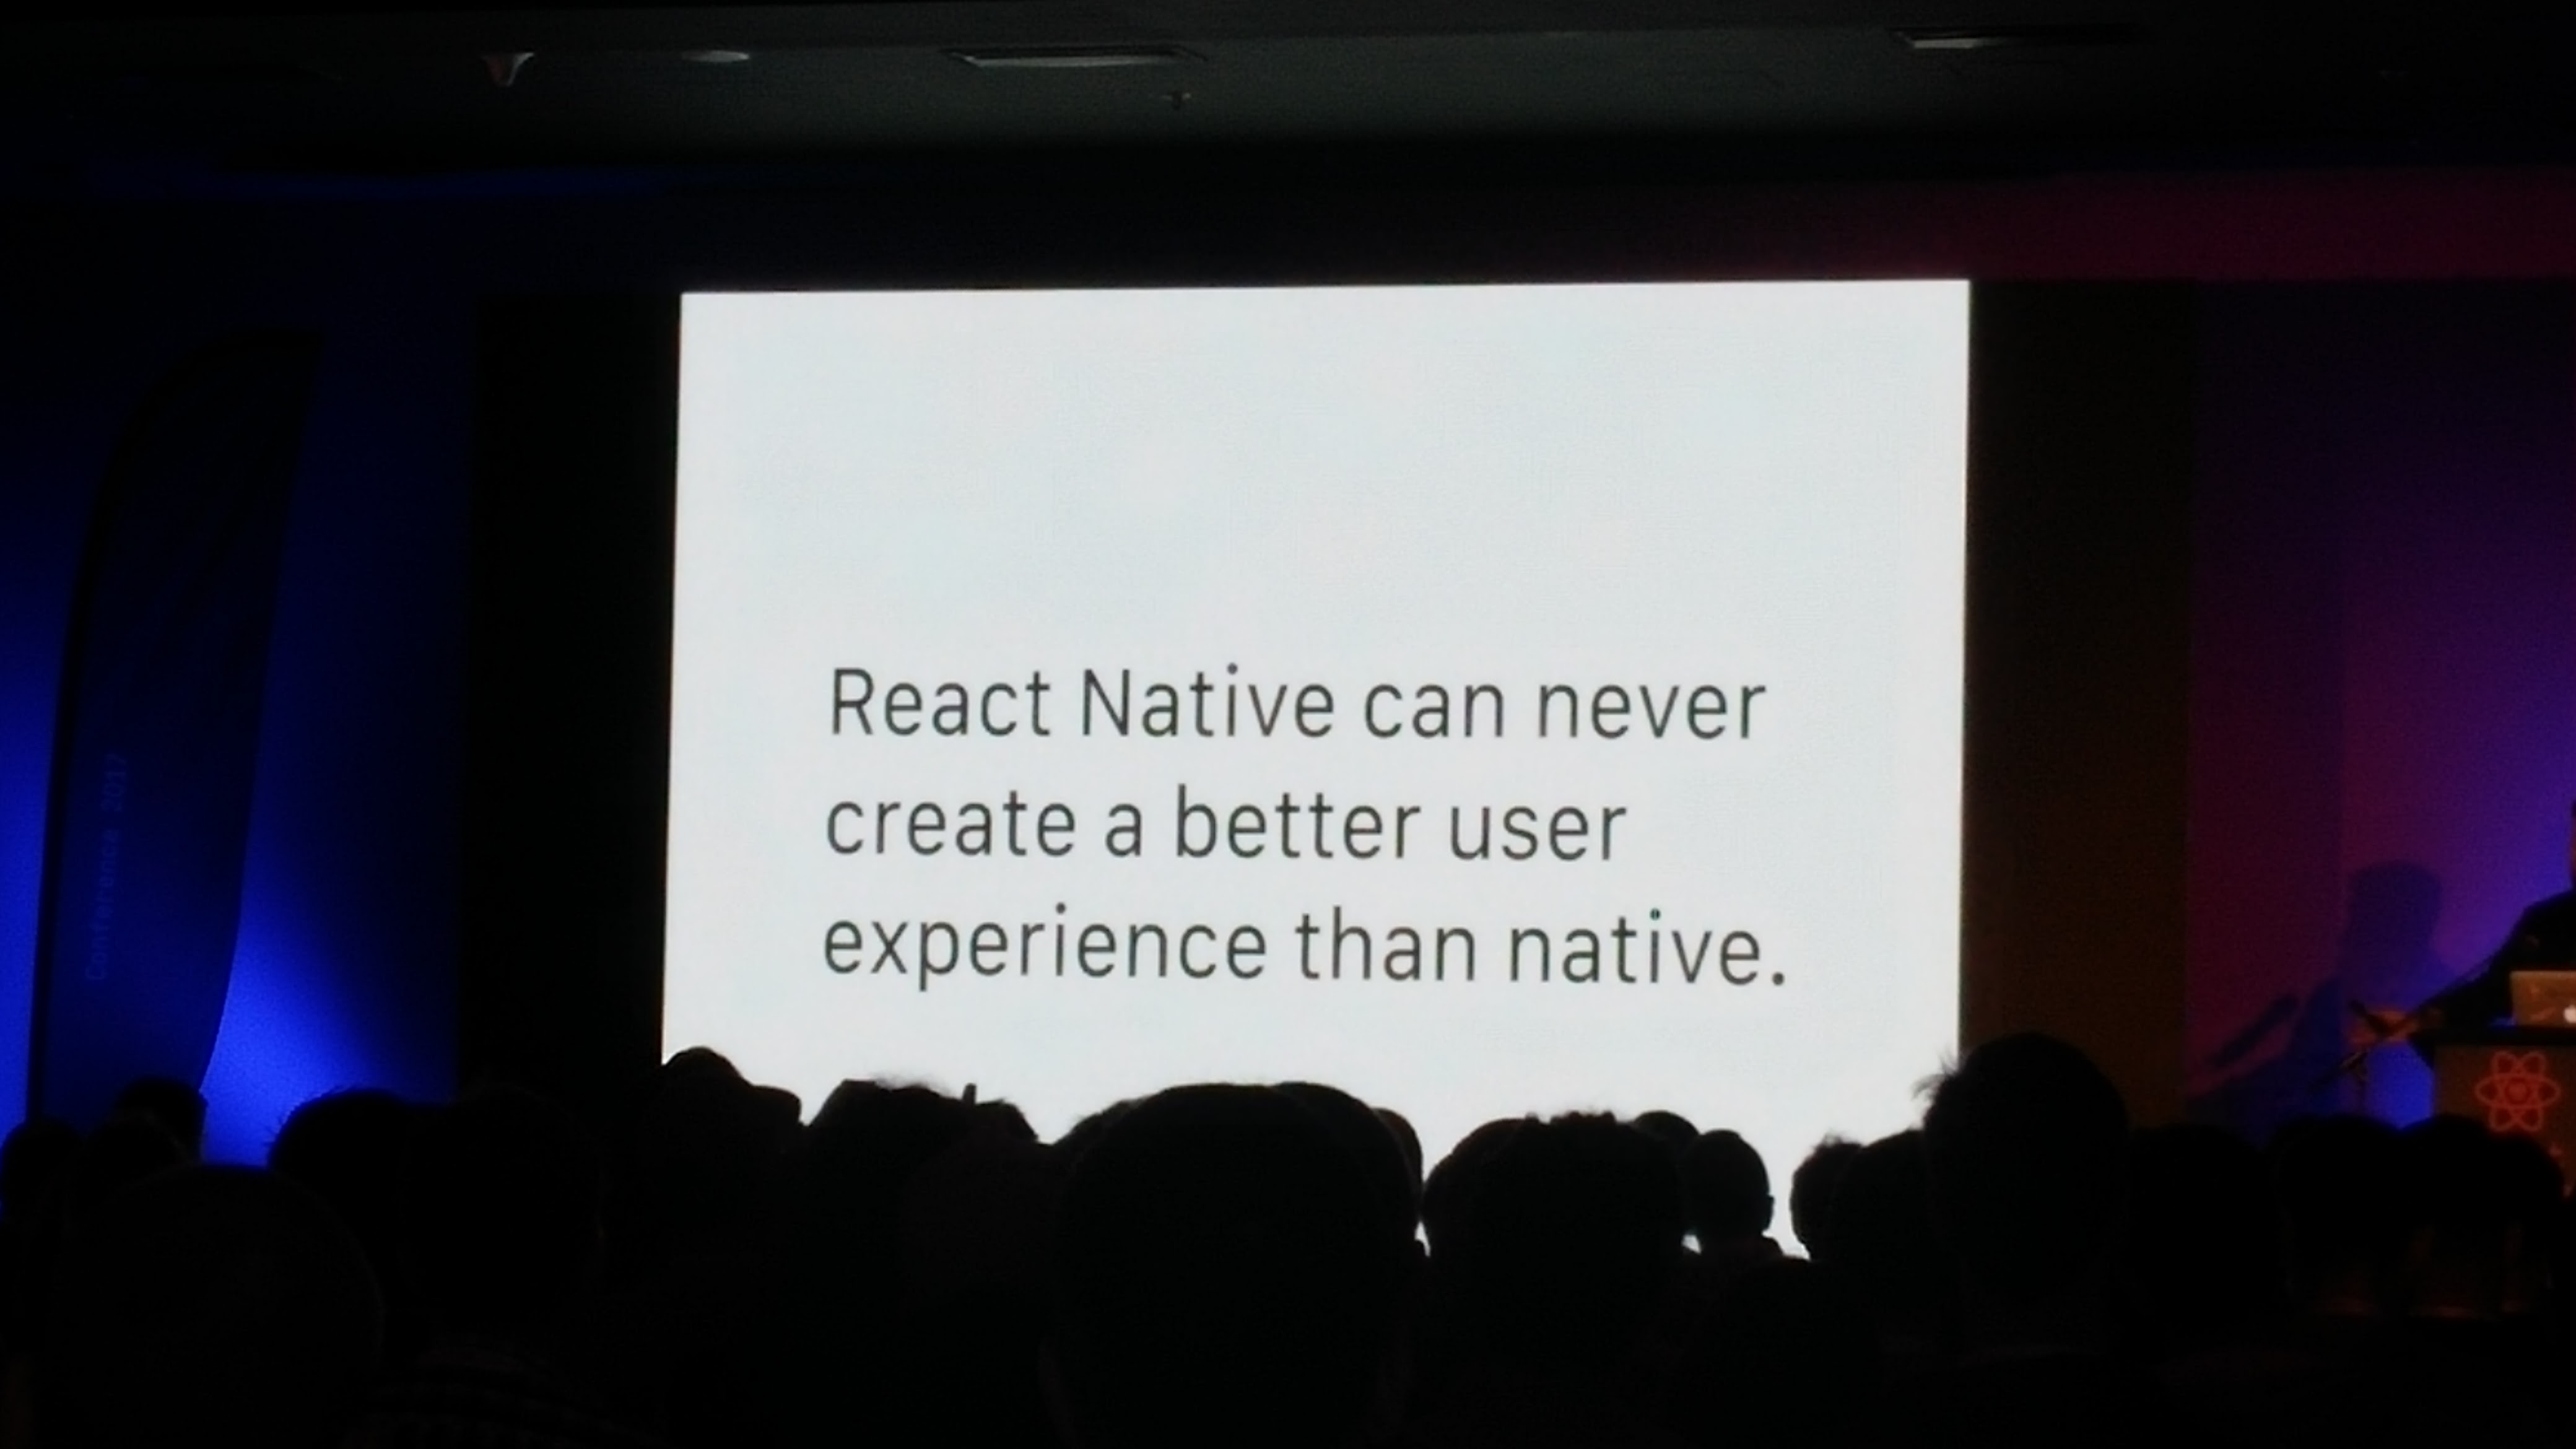 React Native can never be better than native